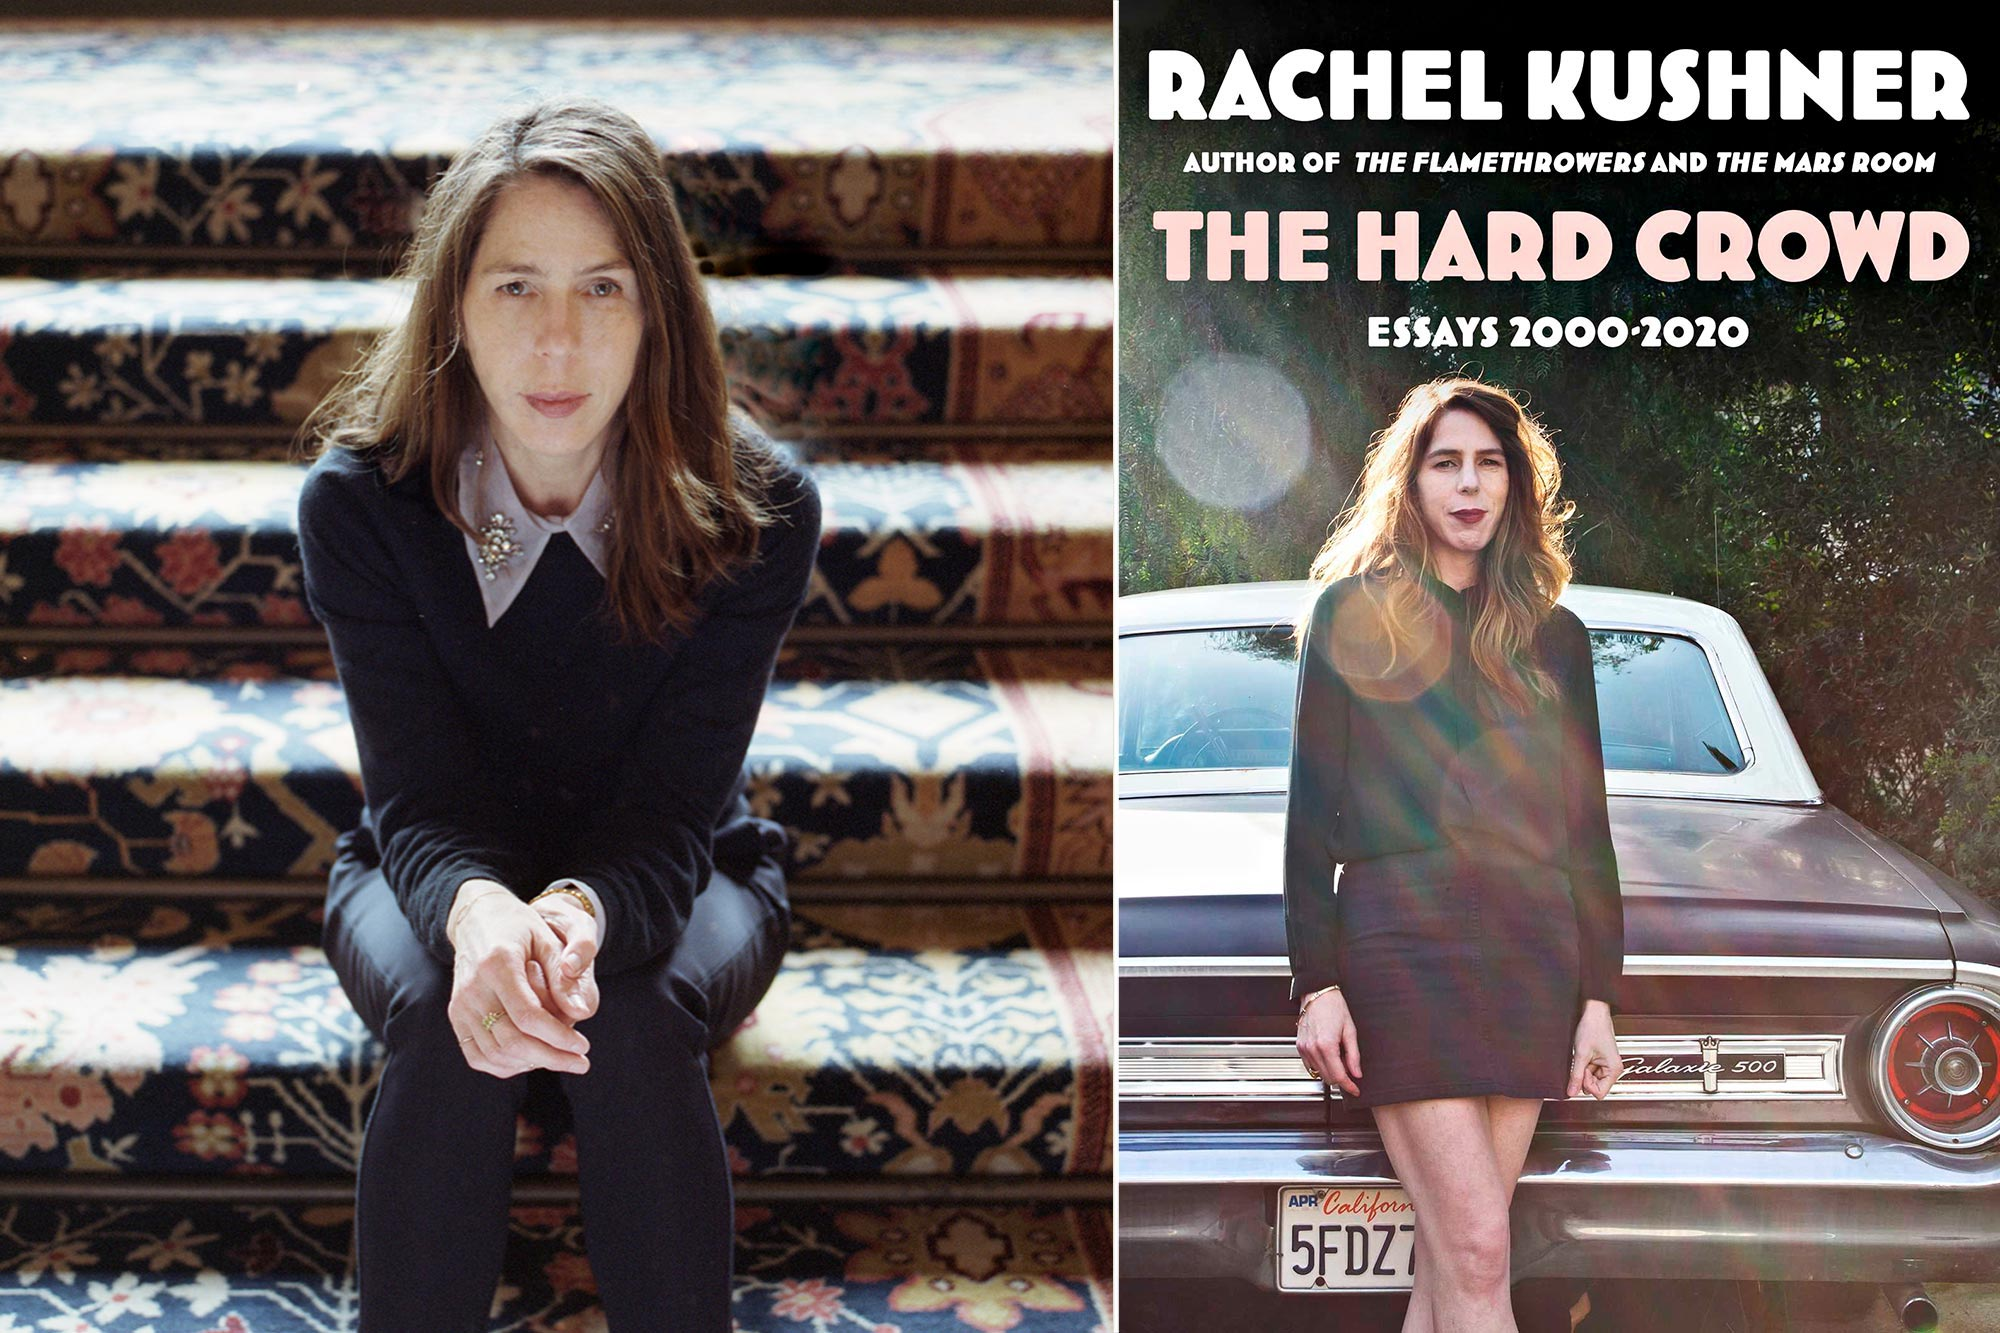 Rachel Kushner, THE HARD CROWD